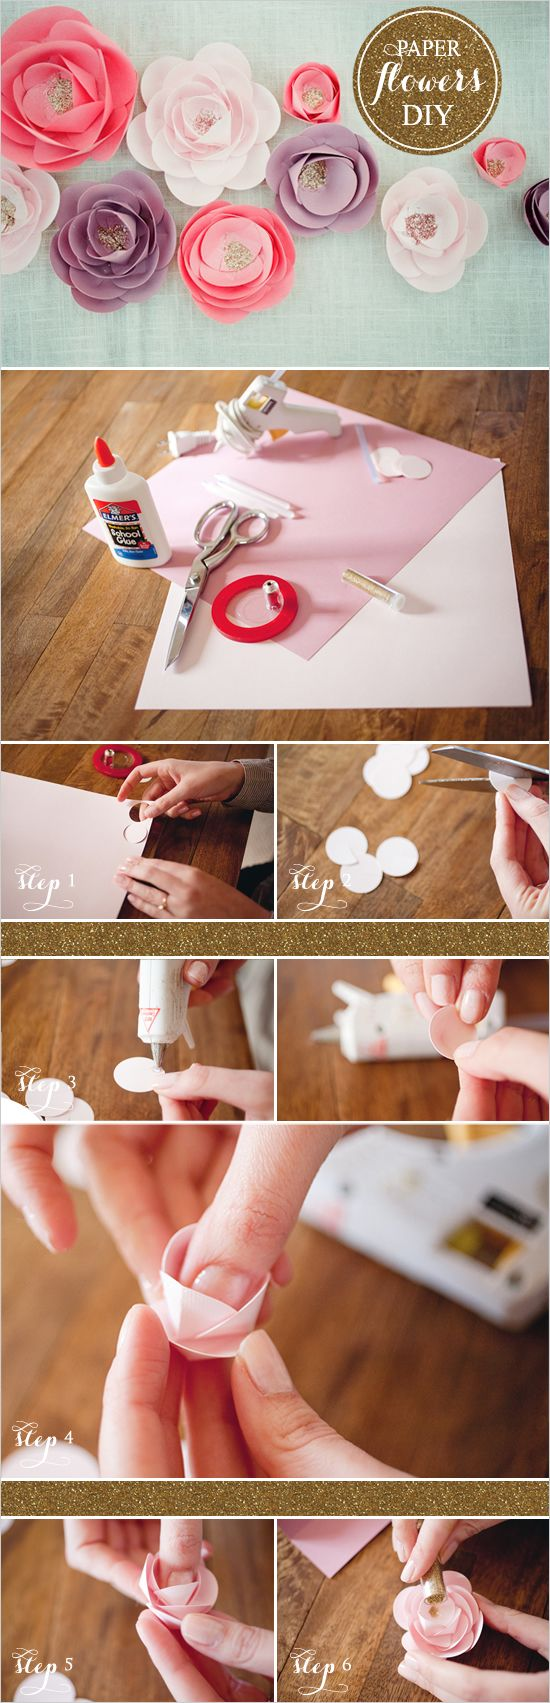 DIY Paper Flowers for any occasion you like.